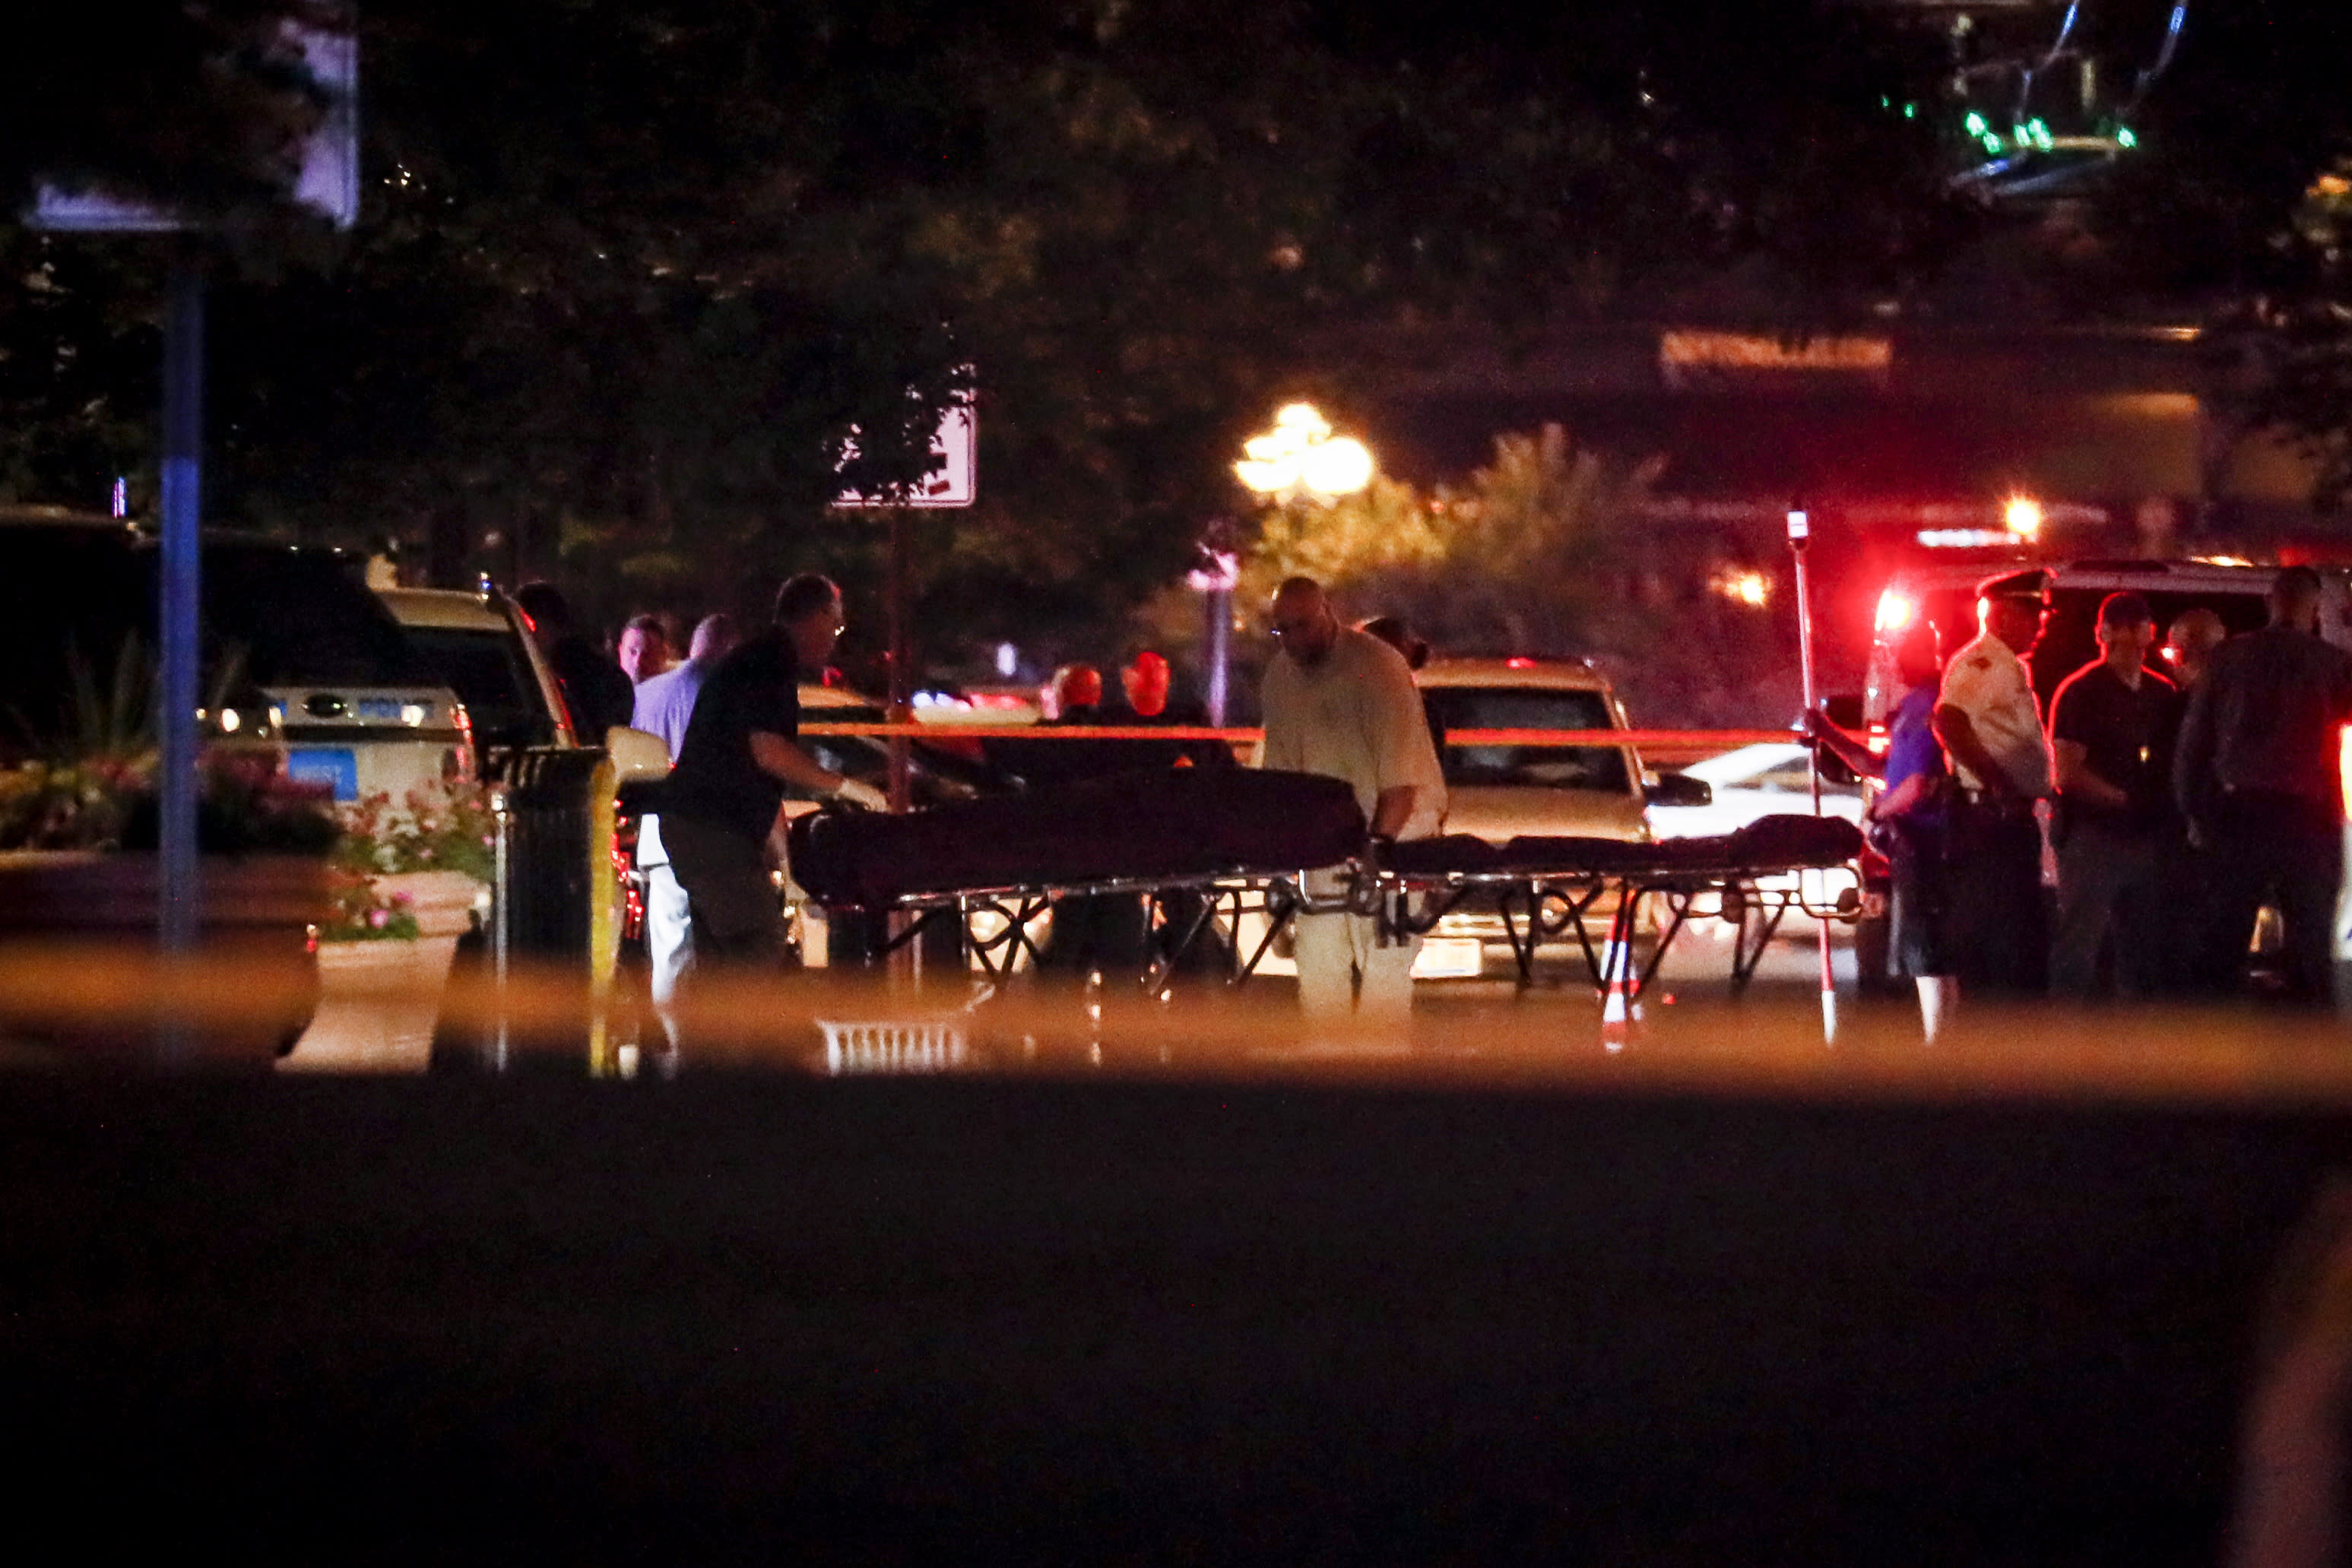 Nine dead in OH shooting and at least 16 injured